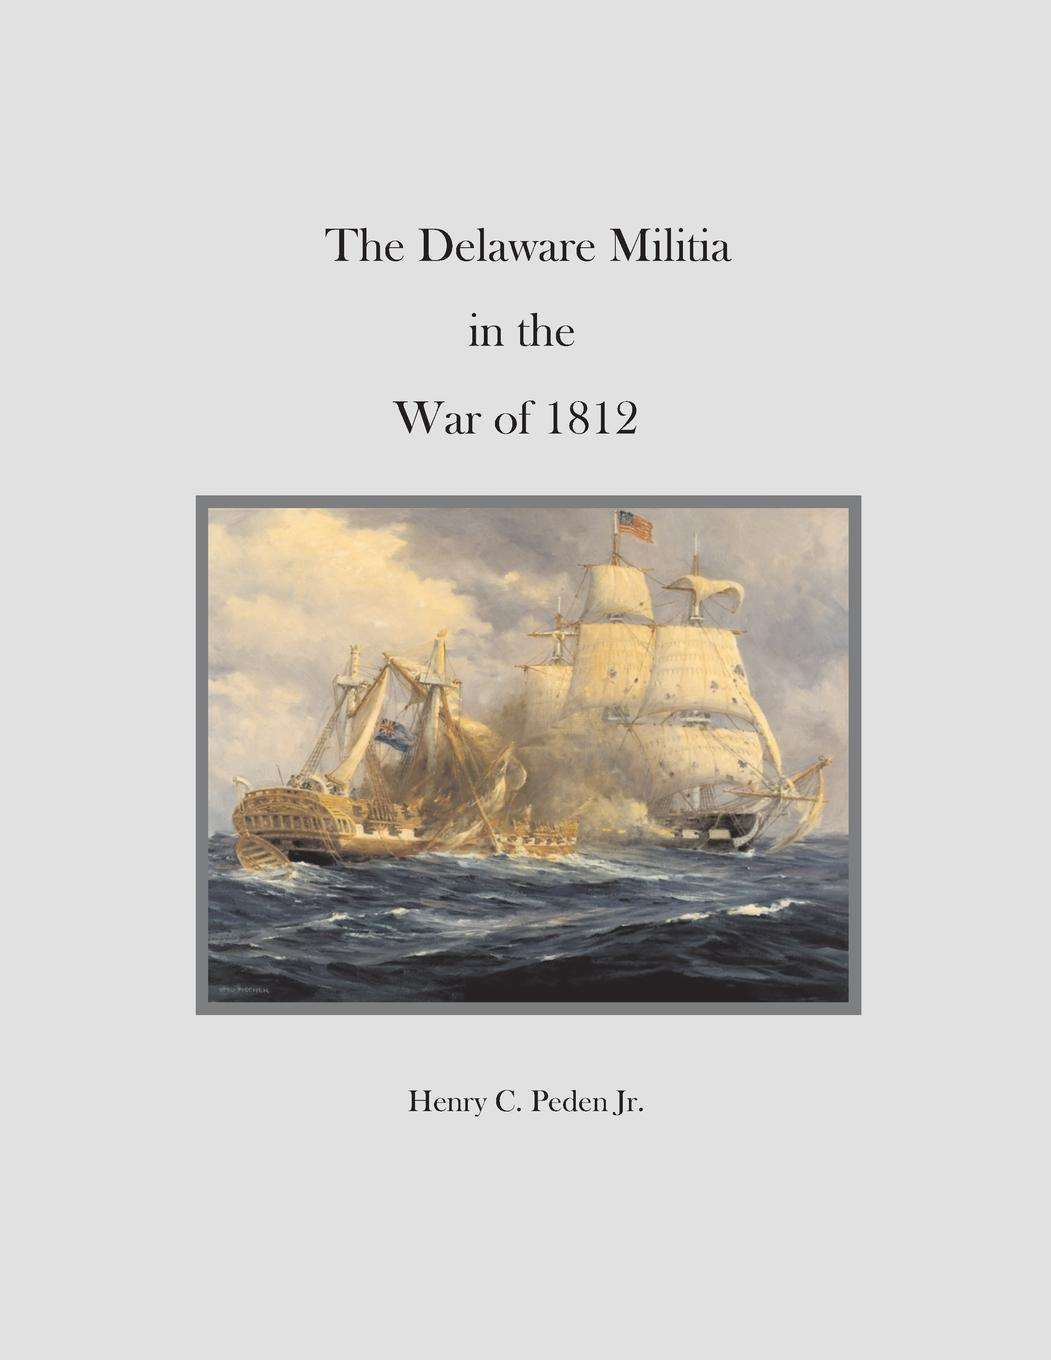 The Delaware Militia in the War of 1812